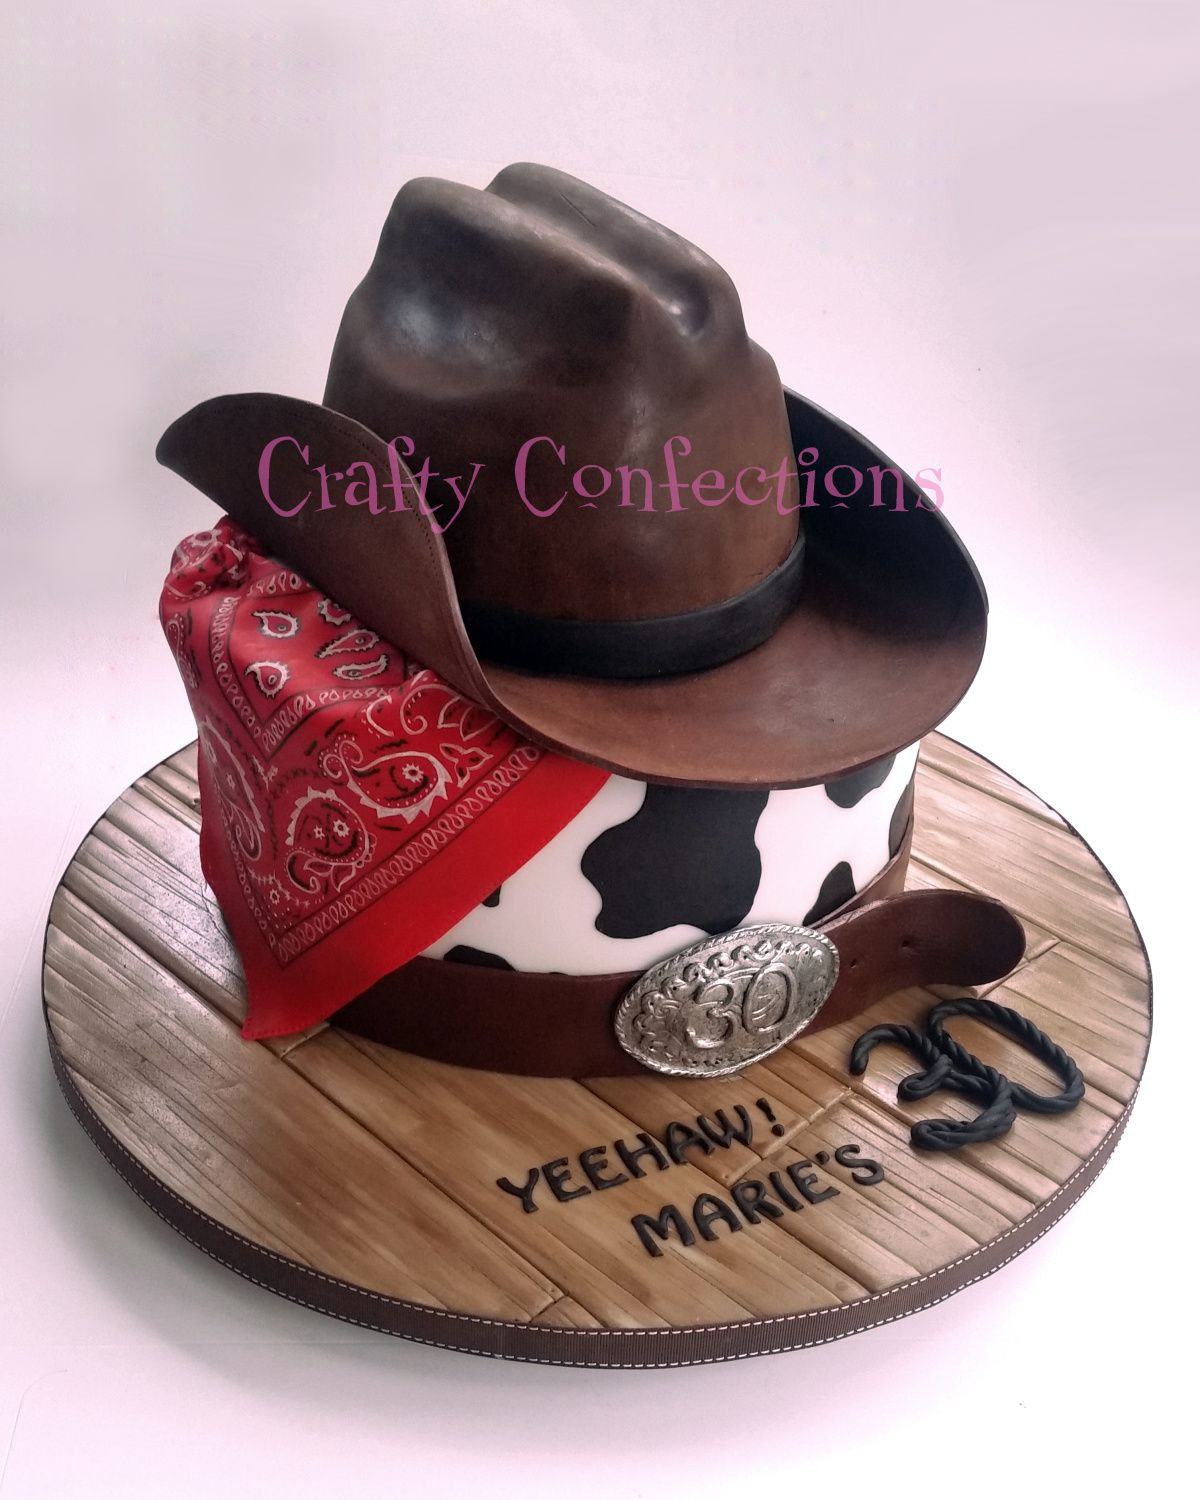 Swell Western Themed 30Th Birthday Cake Cake By Kelly Cope In 2020 Funny Birthday Cards Online Alyptdamsfinfo